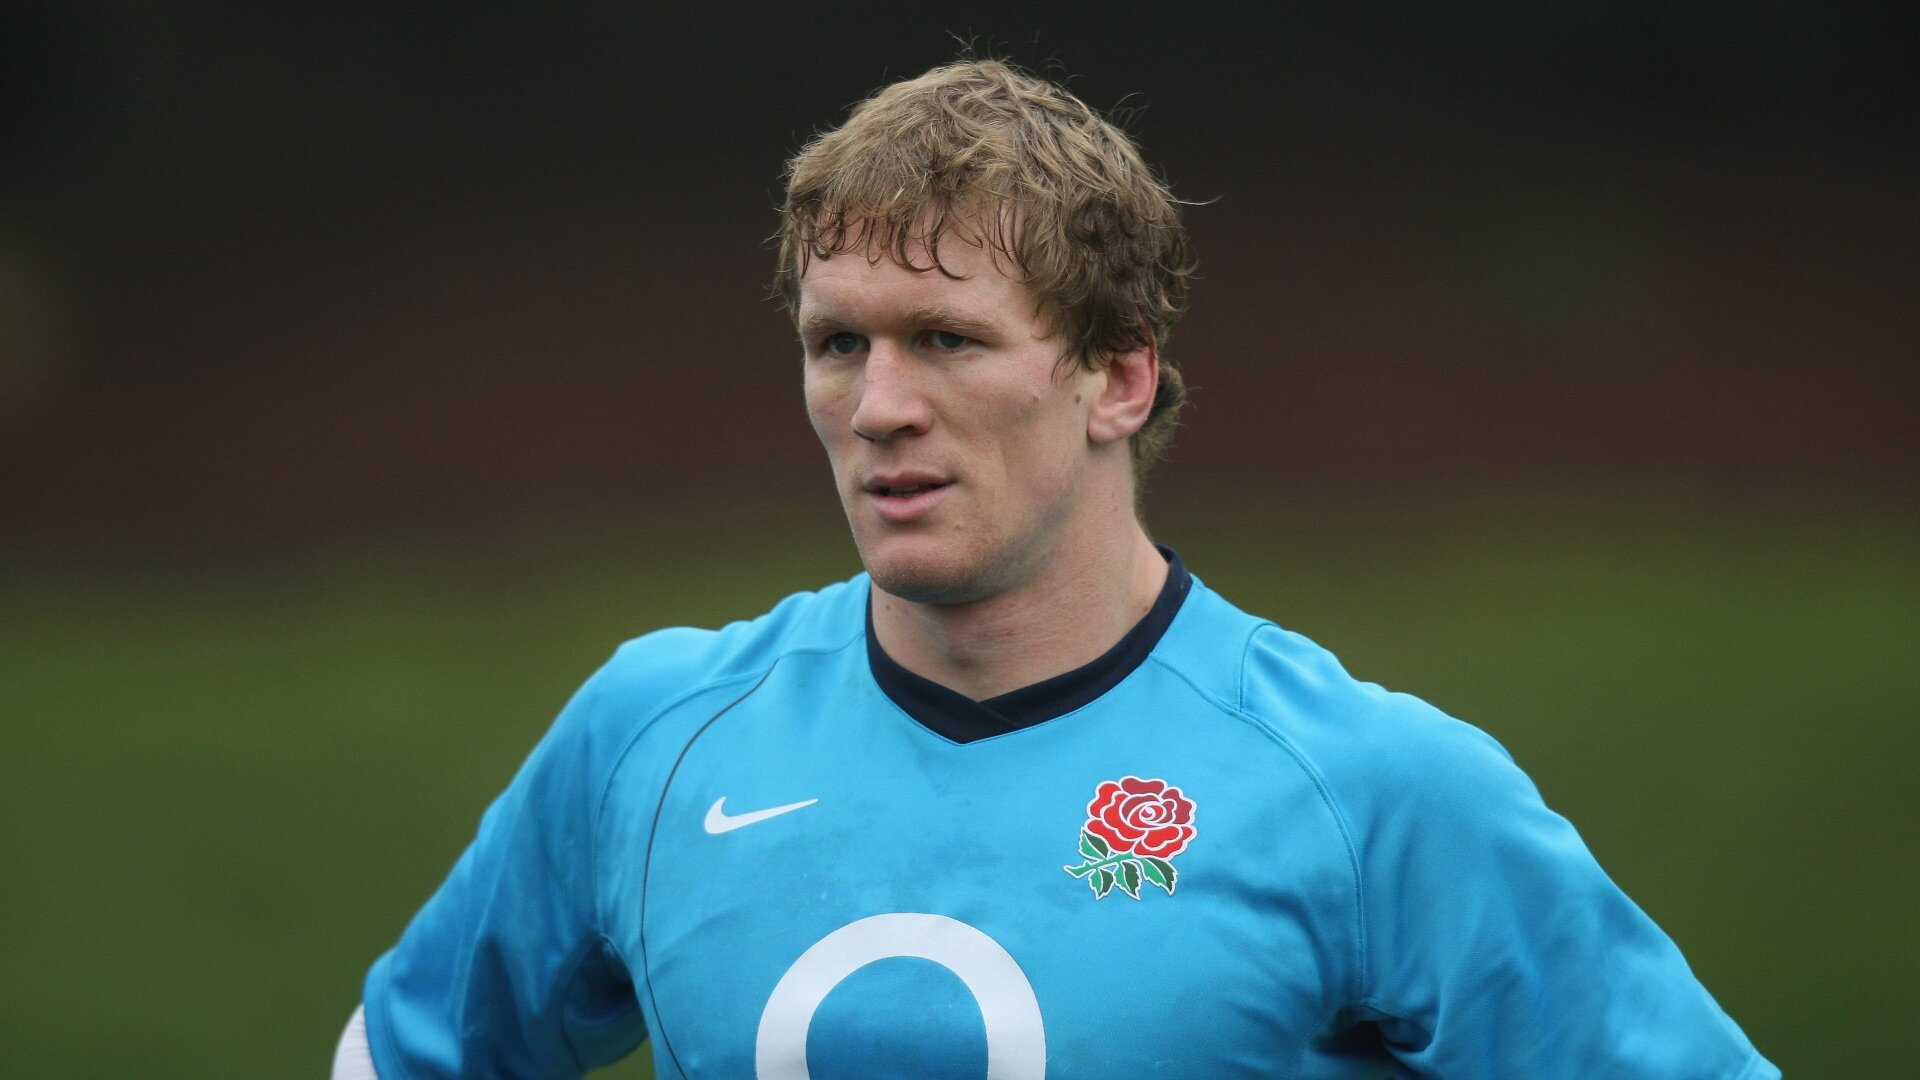 Wasps greats show support for ex-star now working for the NHS